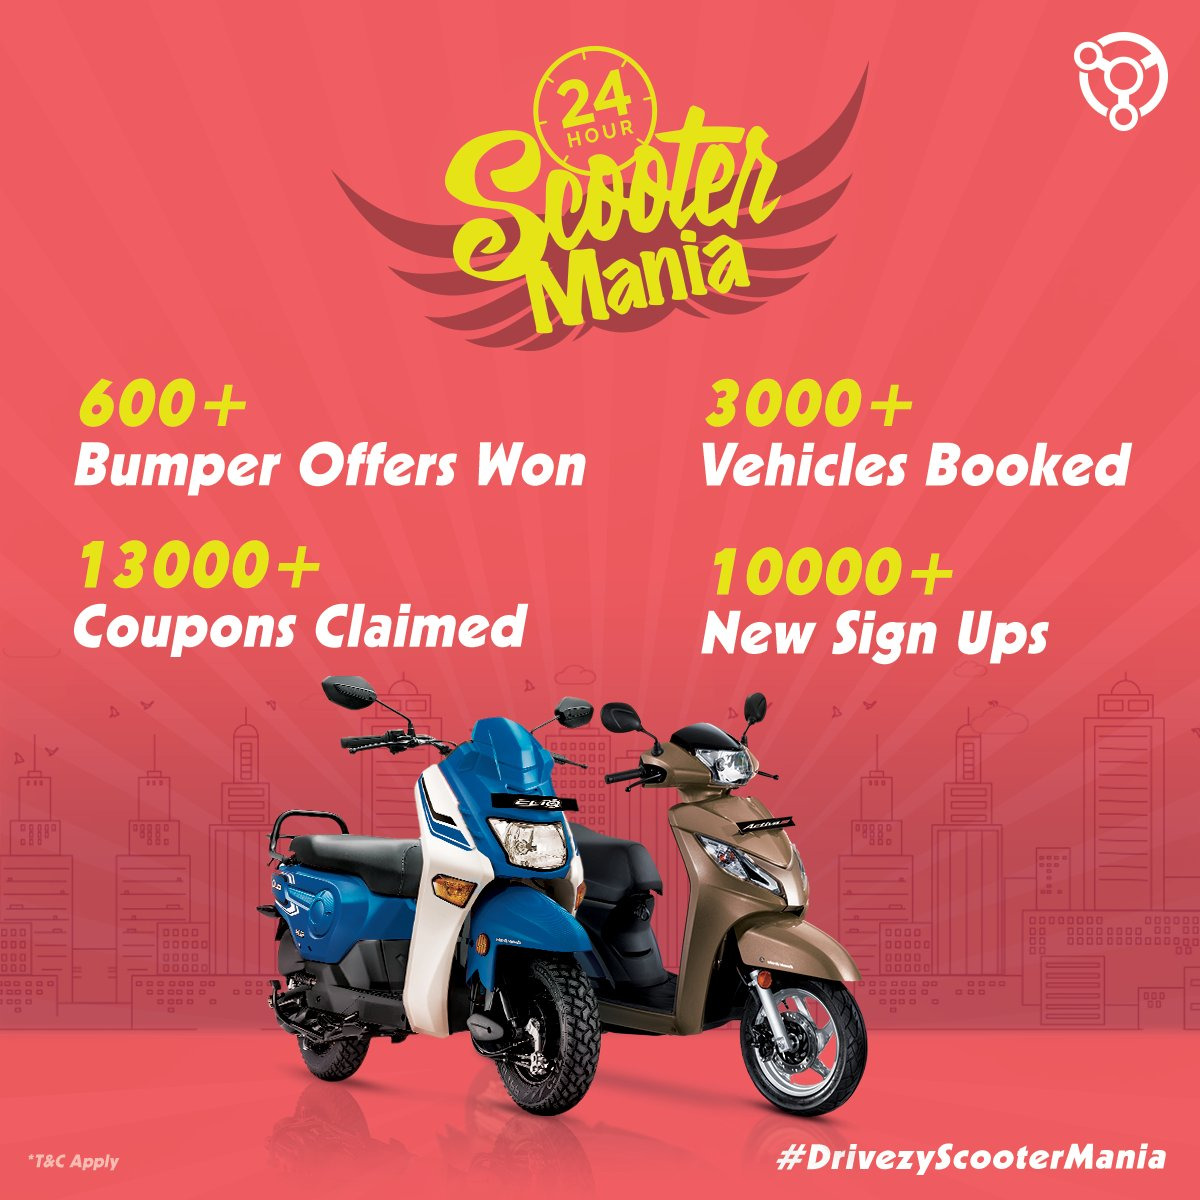 Our #DrivezyScooterMania bumper offers sold out in LESS THAN 24 HOURS! So... we thought, wed go a bit crazy & might just bring it back for you! 200 RTs on this & our next batch of scooters goes up - with same CRAZY OFFERS! AGAIN. Well & truly, ab se sirf #ApniChalaniHai.